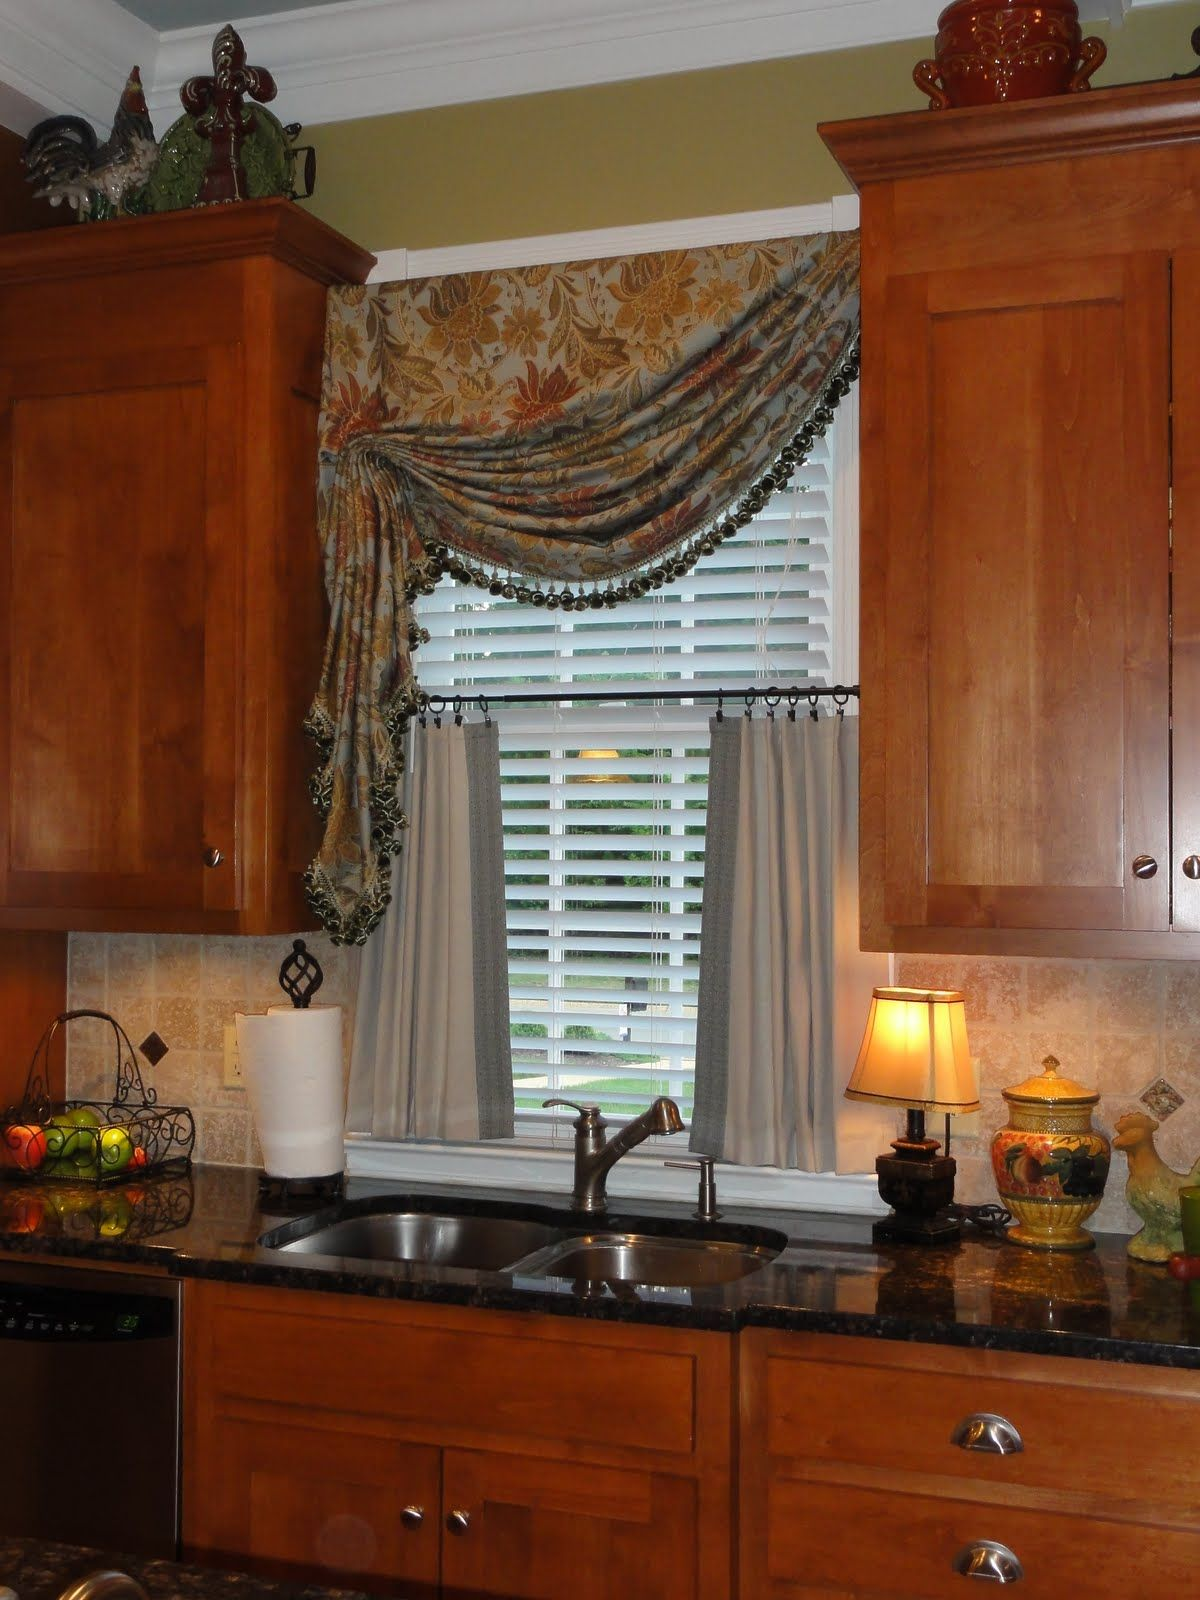 Modern kitchen curtain styles - Cafe Curtains Style Window Treatments Simply By Sabrina Kitchen Window Treatment Add On Window Treatment